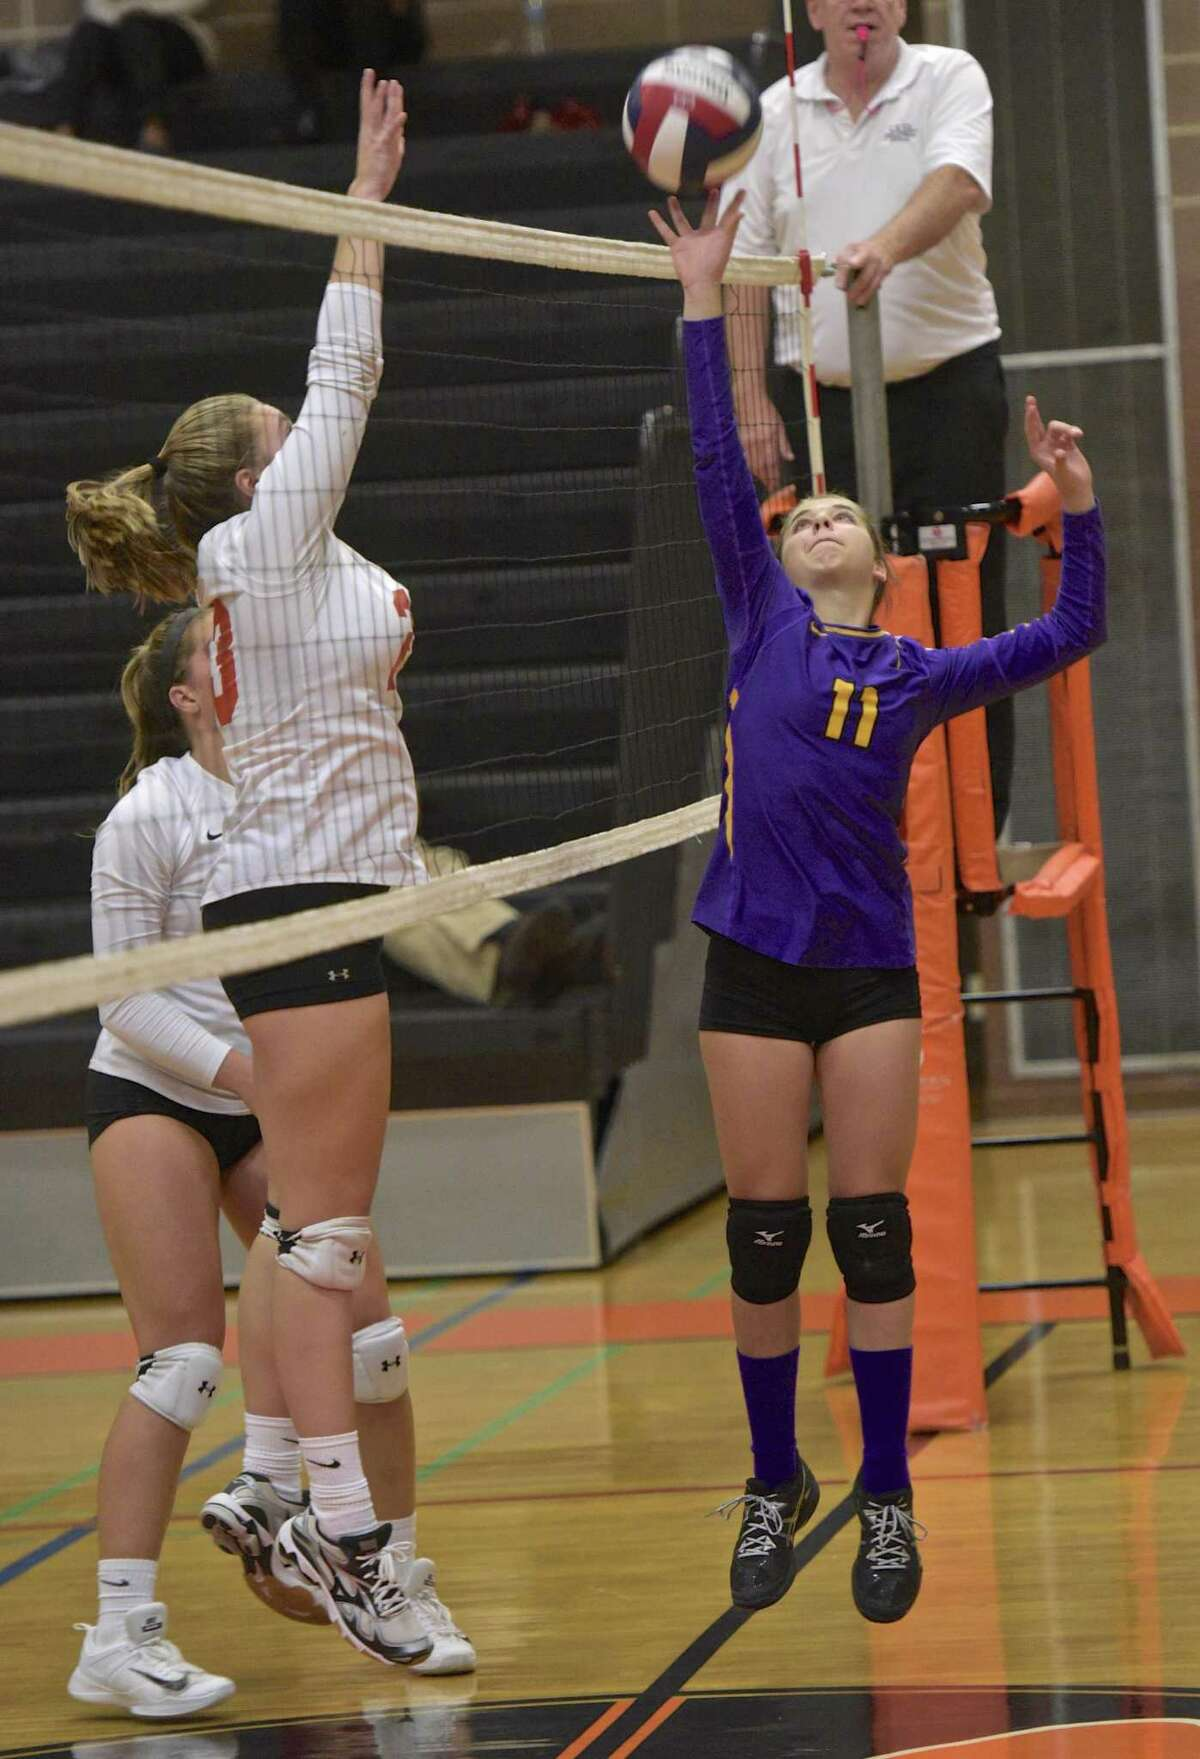 Westhill's Vanna Servos (11) taps the ball over the net as Ridgefield's Olivia Lescinskas (23) goes up for the block in the girls volleyball game between Westhill and Ridgefield high schools on Oct. 25, 2017, at Ridgefield High School, in Ridgefield, Conn.